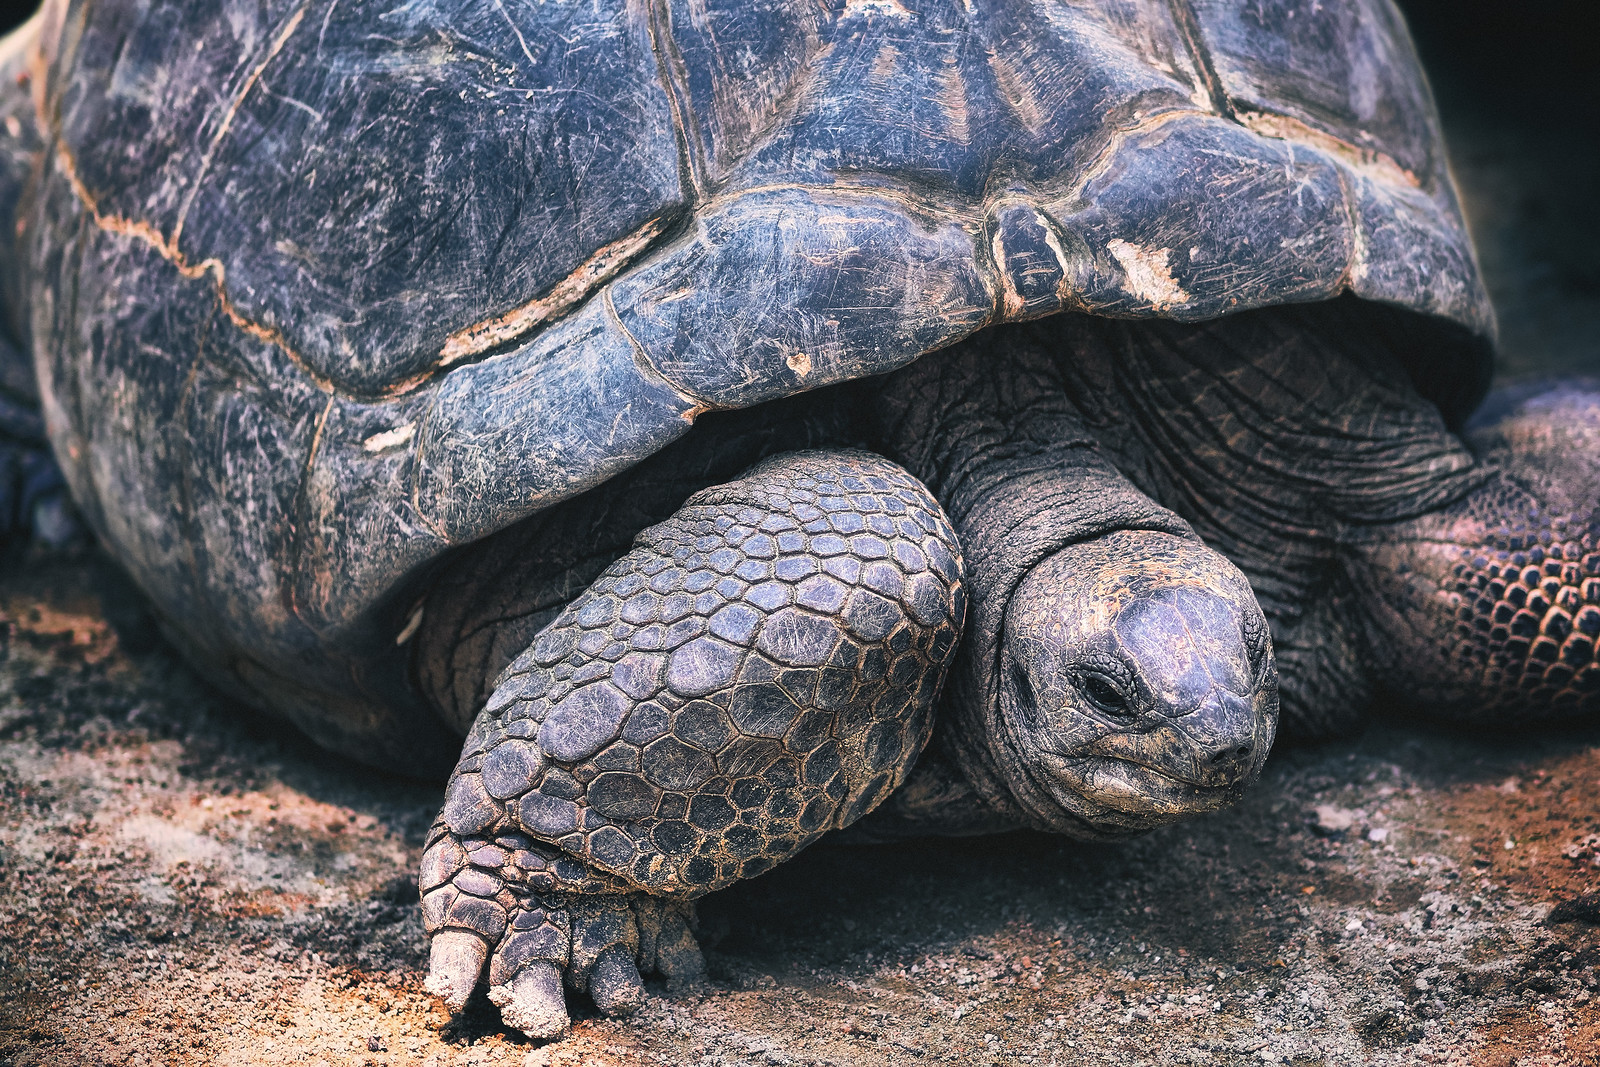 Giant Tortise